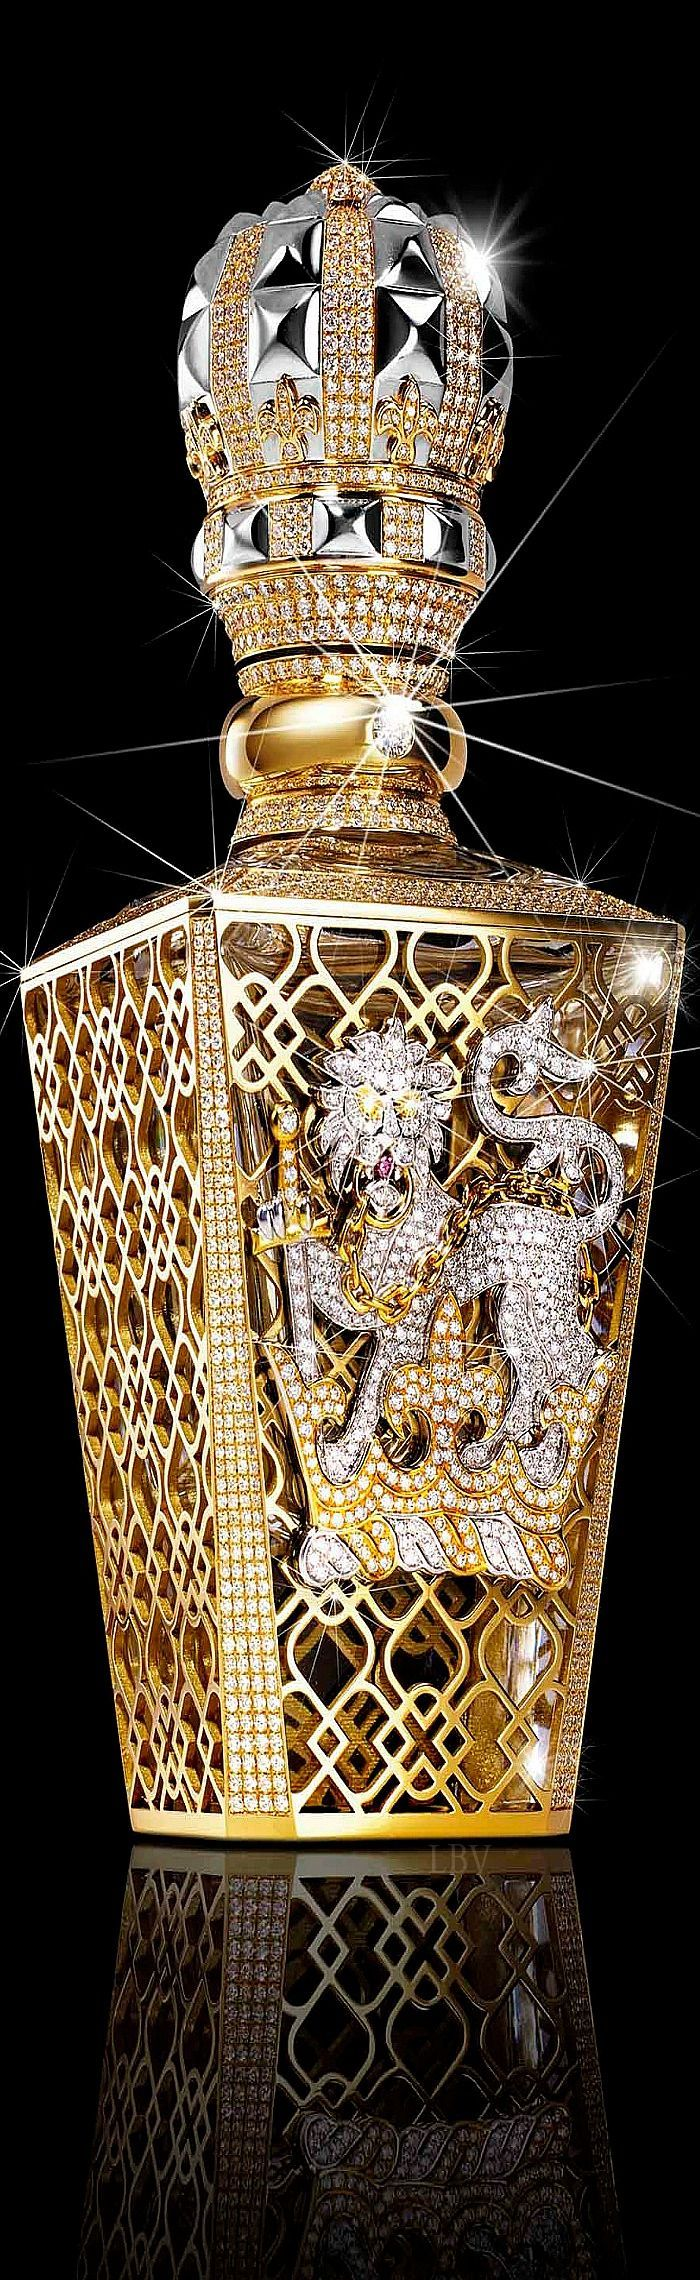 The World's Most Expensive Perfume ♥ Clive Christian No 1 Passant Guardant